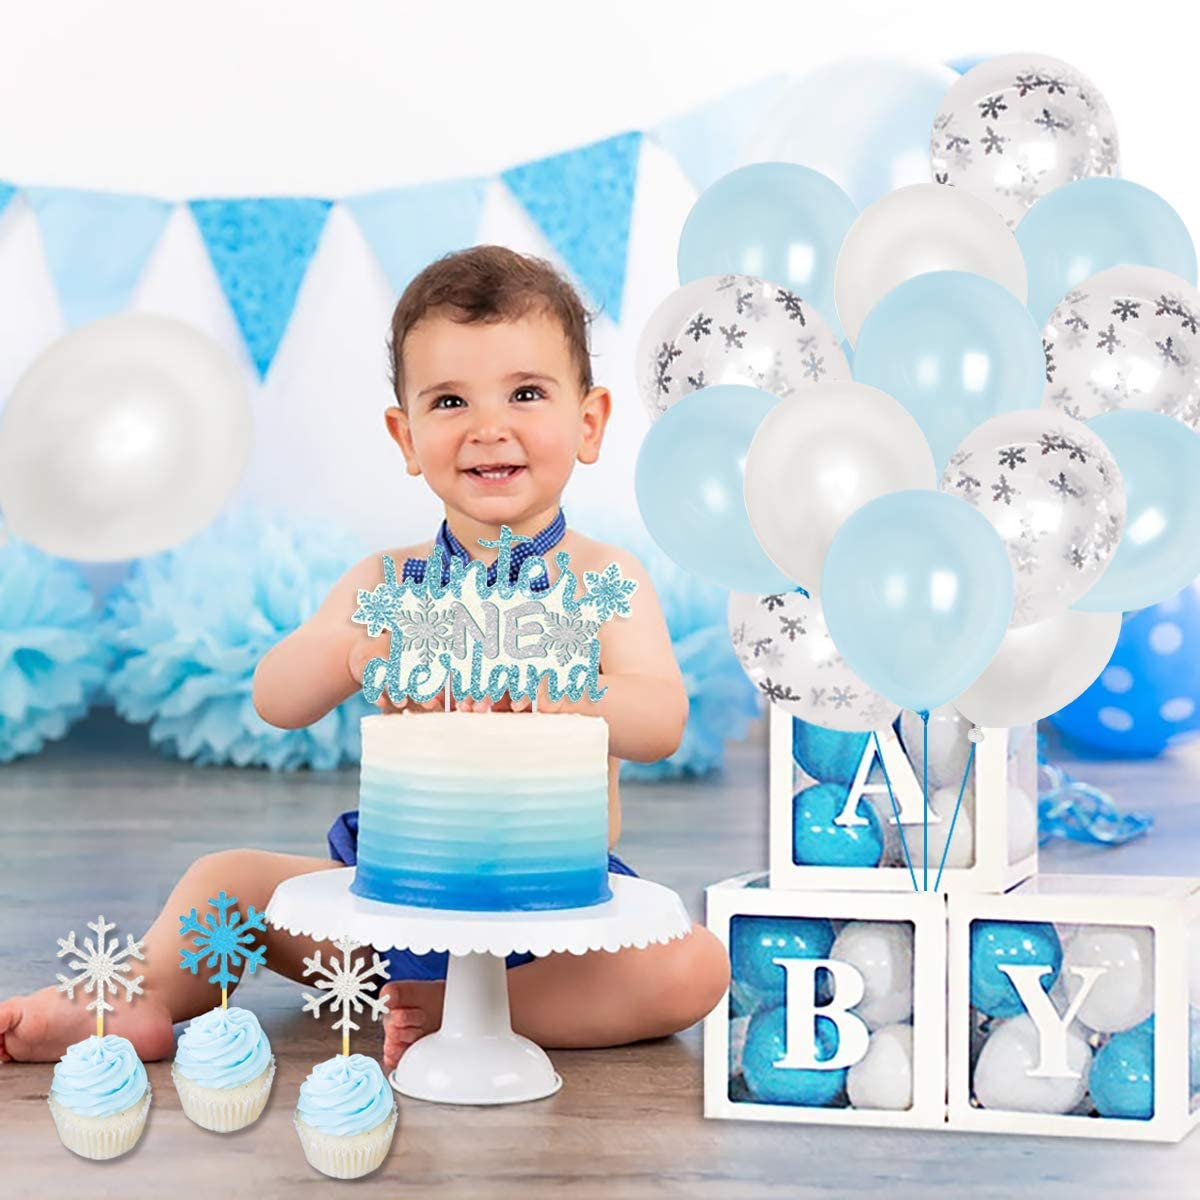 Winter Onederland Birthday Decorations Boy Blue and Sliver Wonderland Snowflake 1st Birthday Party Supplies with Snowflake Photo Banner Winter Onederland Banner Cake Topper